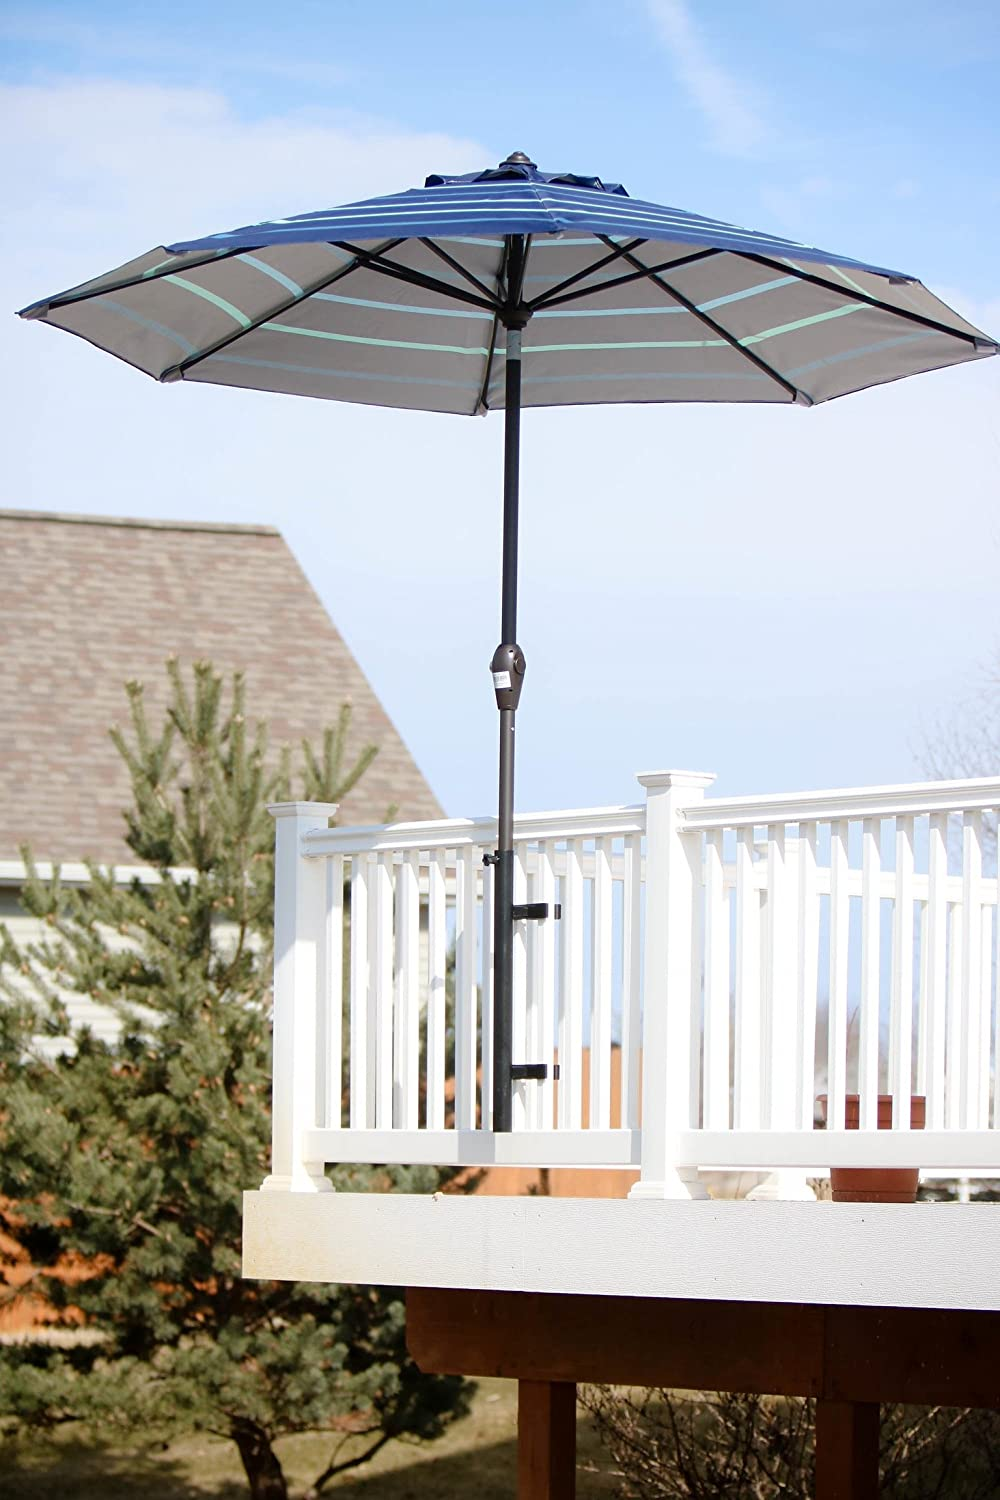 Patio Umbrella Holder Outdoor Umbrella Base and Mount Attaches to Railing Maximizing Patio Space and Shade Black